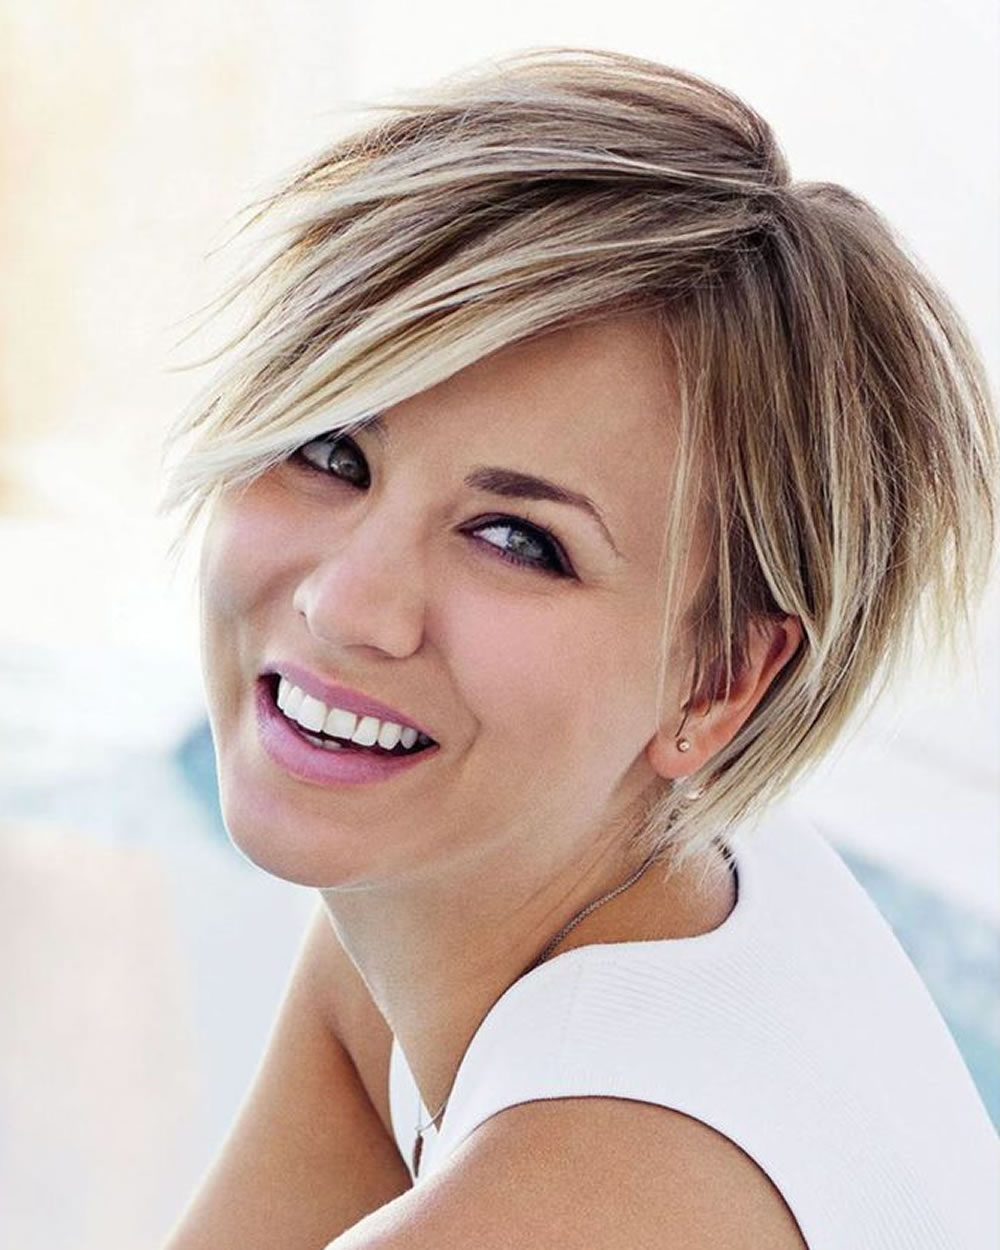 Short Hairstyles For Round Face And Thick Hair | All Hairstyles Within Short Hairstyles For Women With Round Faces (View 21 of 25)